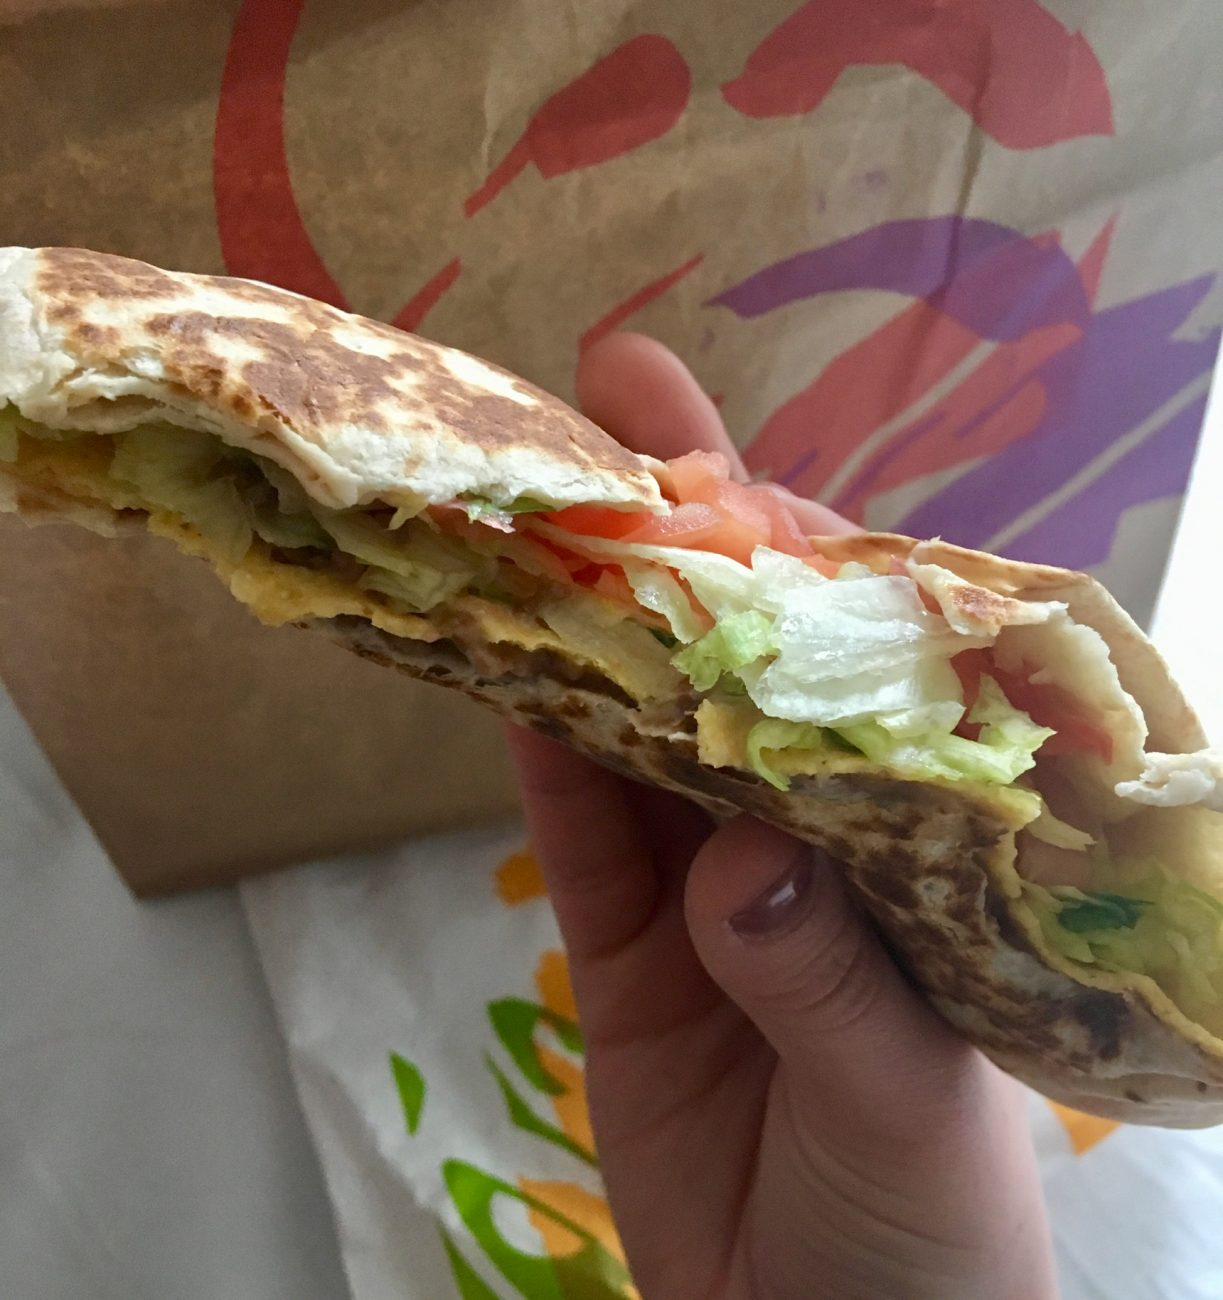 Vegan at Taco Bell Crunchwrap supreme